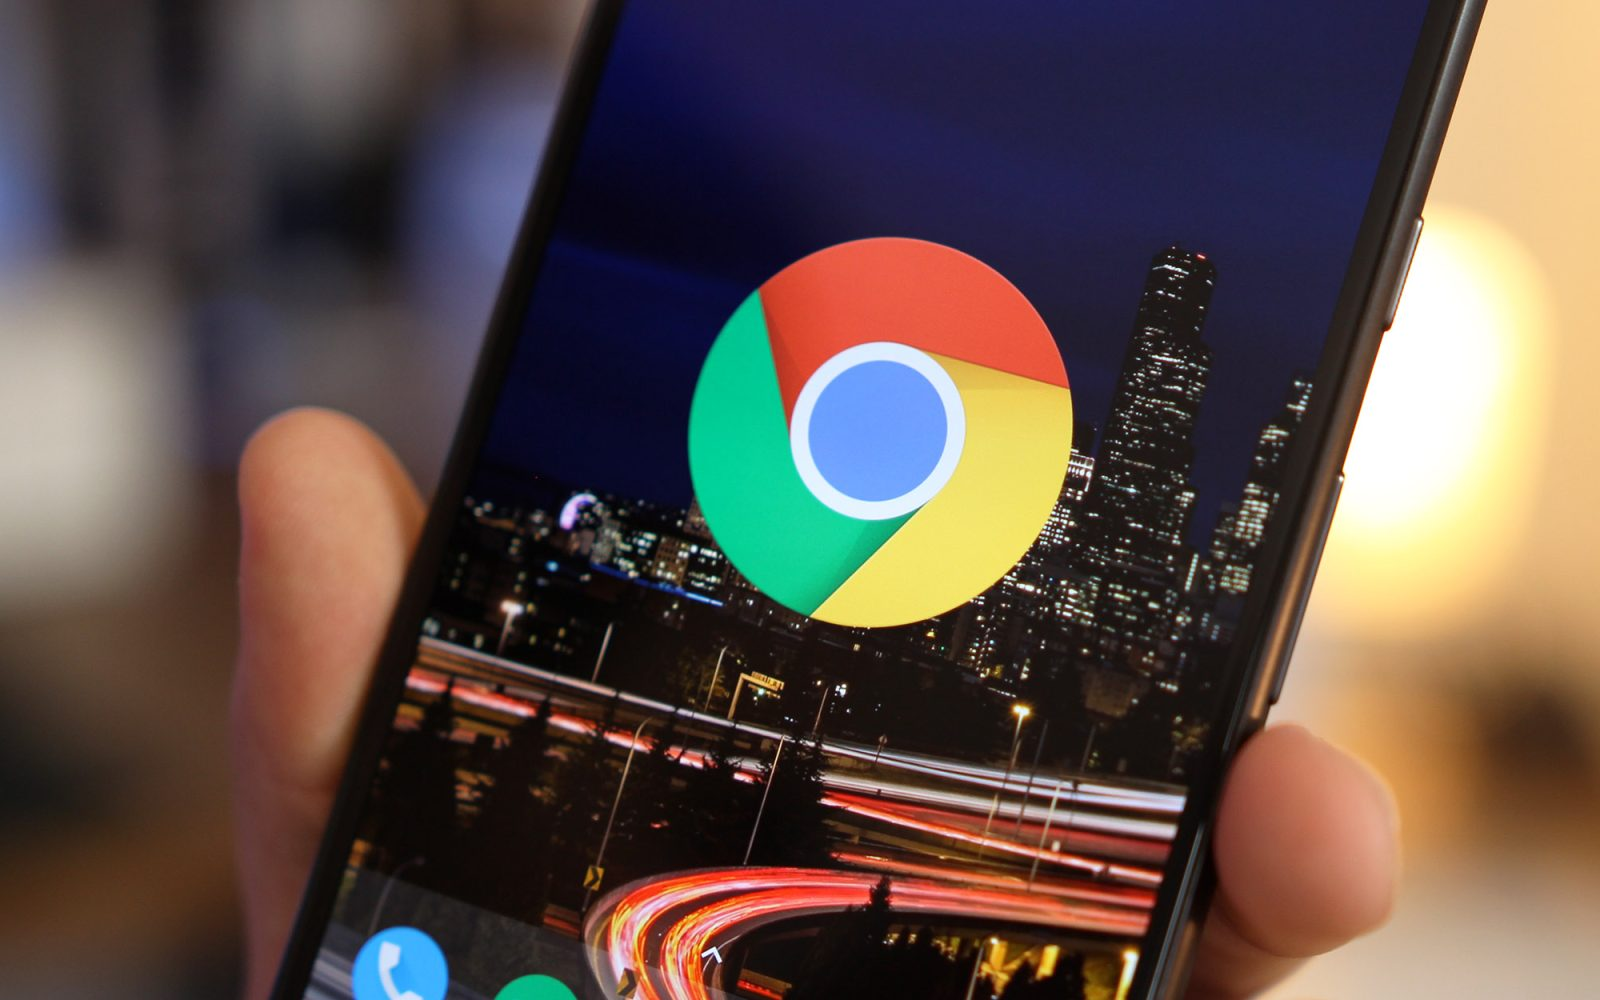 Chrome 57 for android gives custom tabs full page controls deep chrome 57 for android gives custom tabs full page controls deep system access for web apps ccuart Choice Image